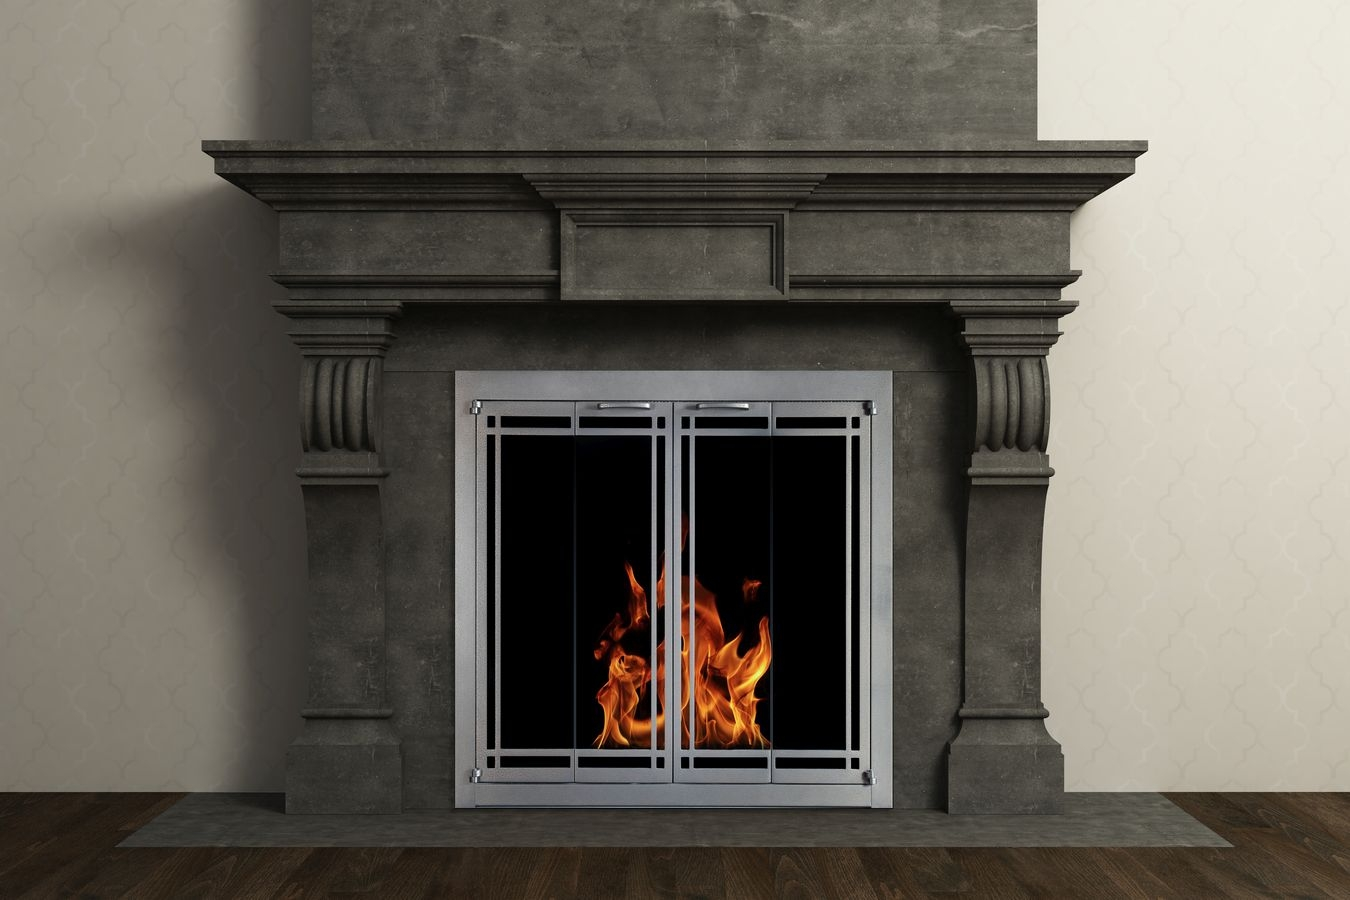 Portland Willamette Steel Door - Ovation Door Rectangular Deco Full Fold Vintage Iron Finish In Dark Grey Mantel Surround